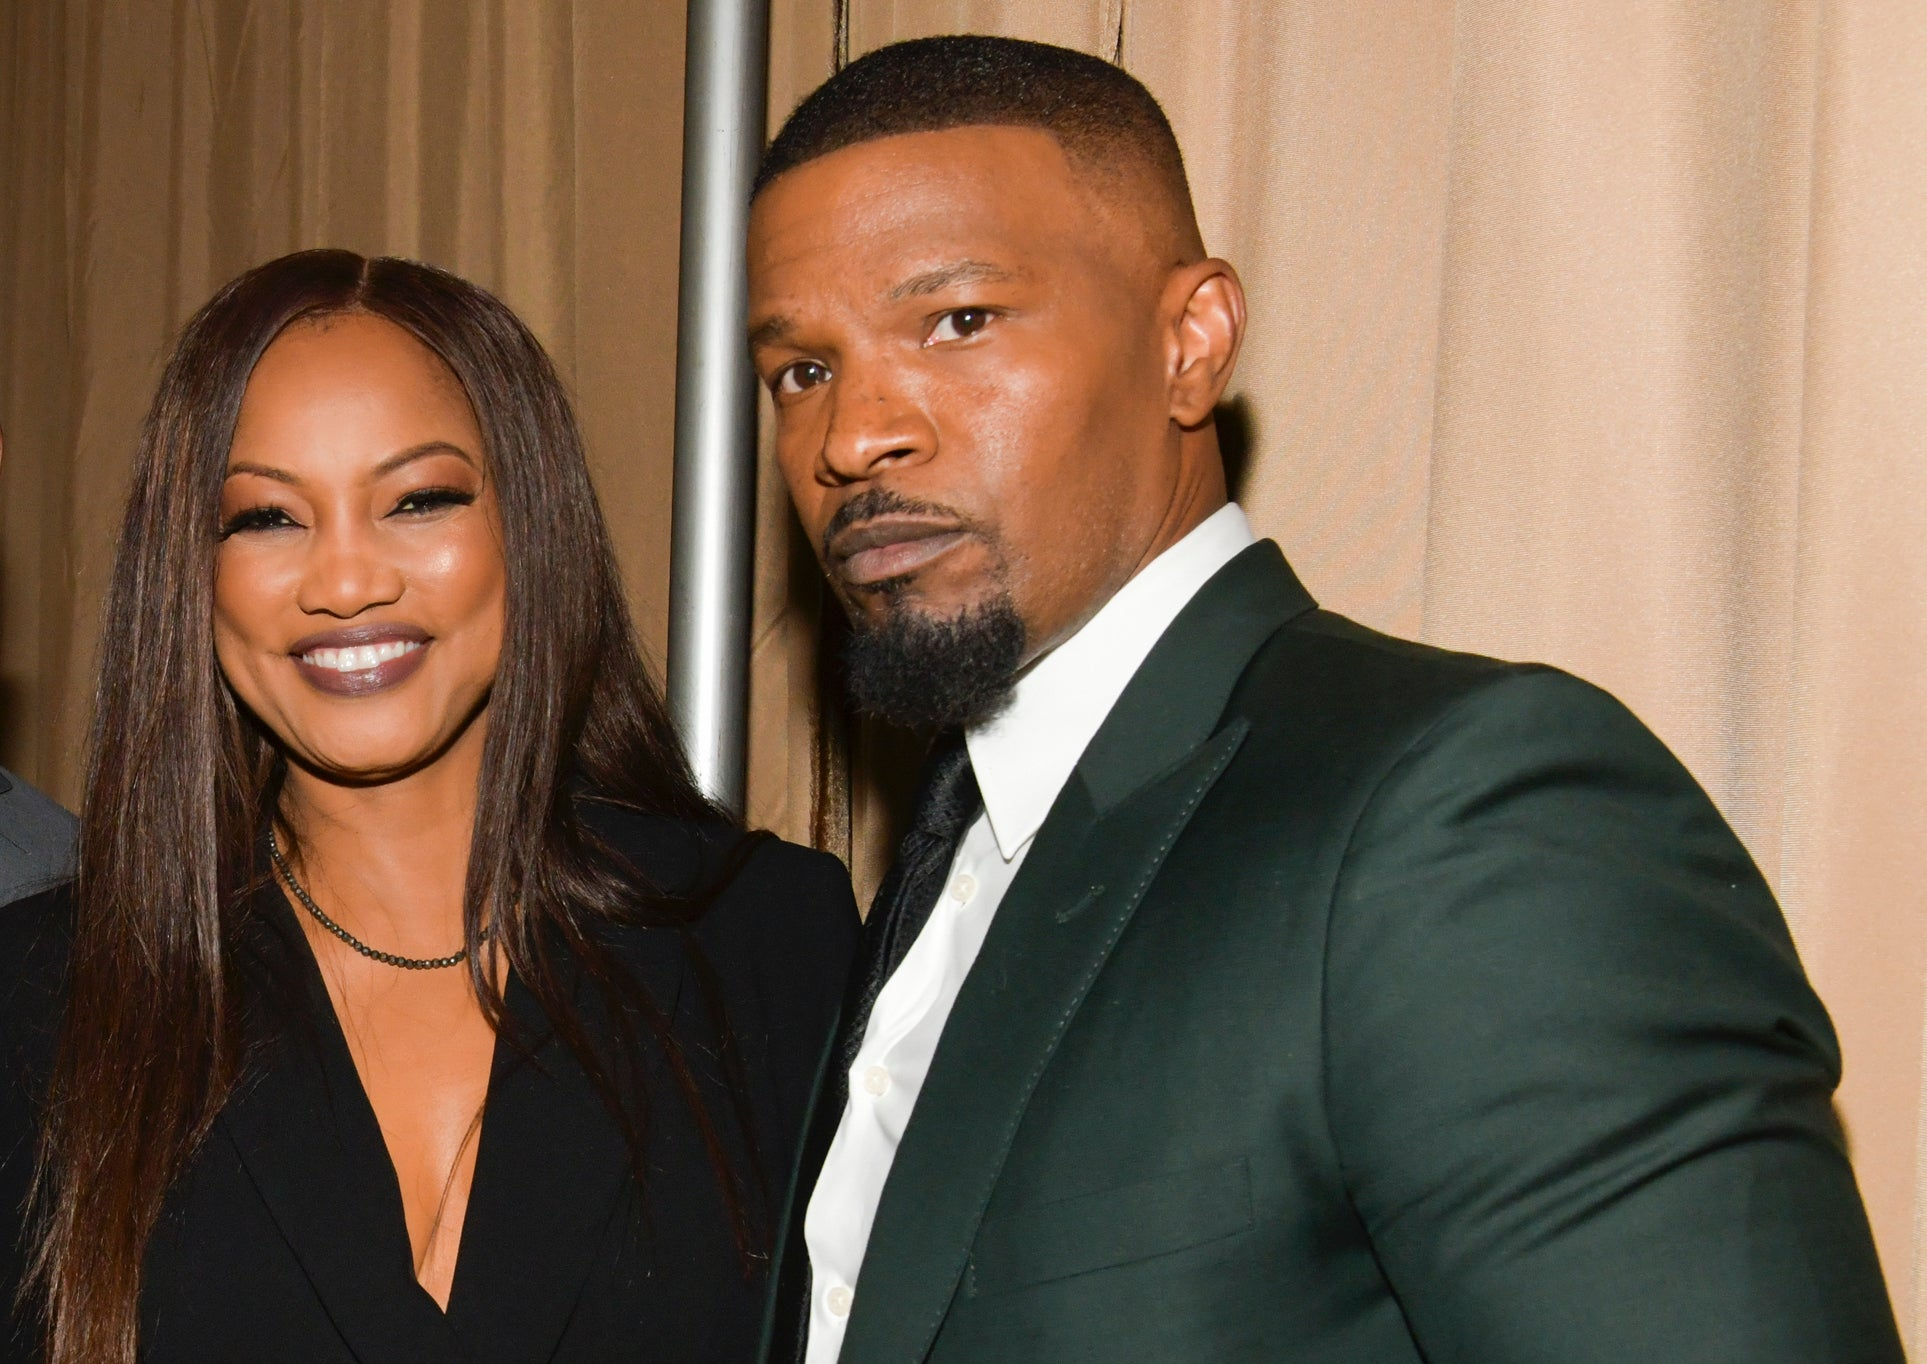 Jamie Foxx Flirts With Former On-Screen Love Interest Garcelle Beauvais – Says They Should've Dated In Real Life!